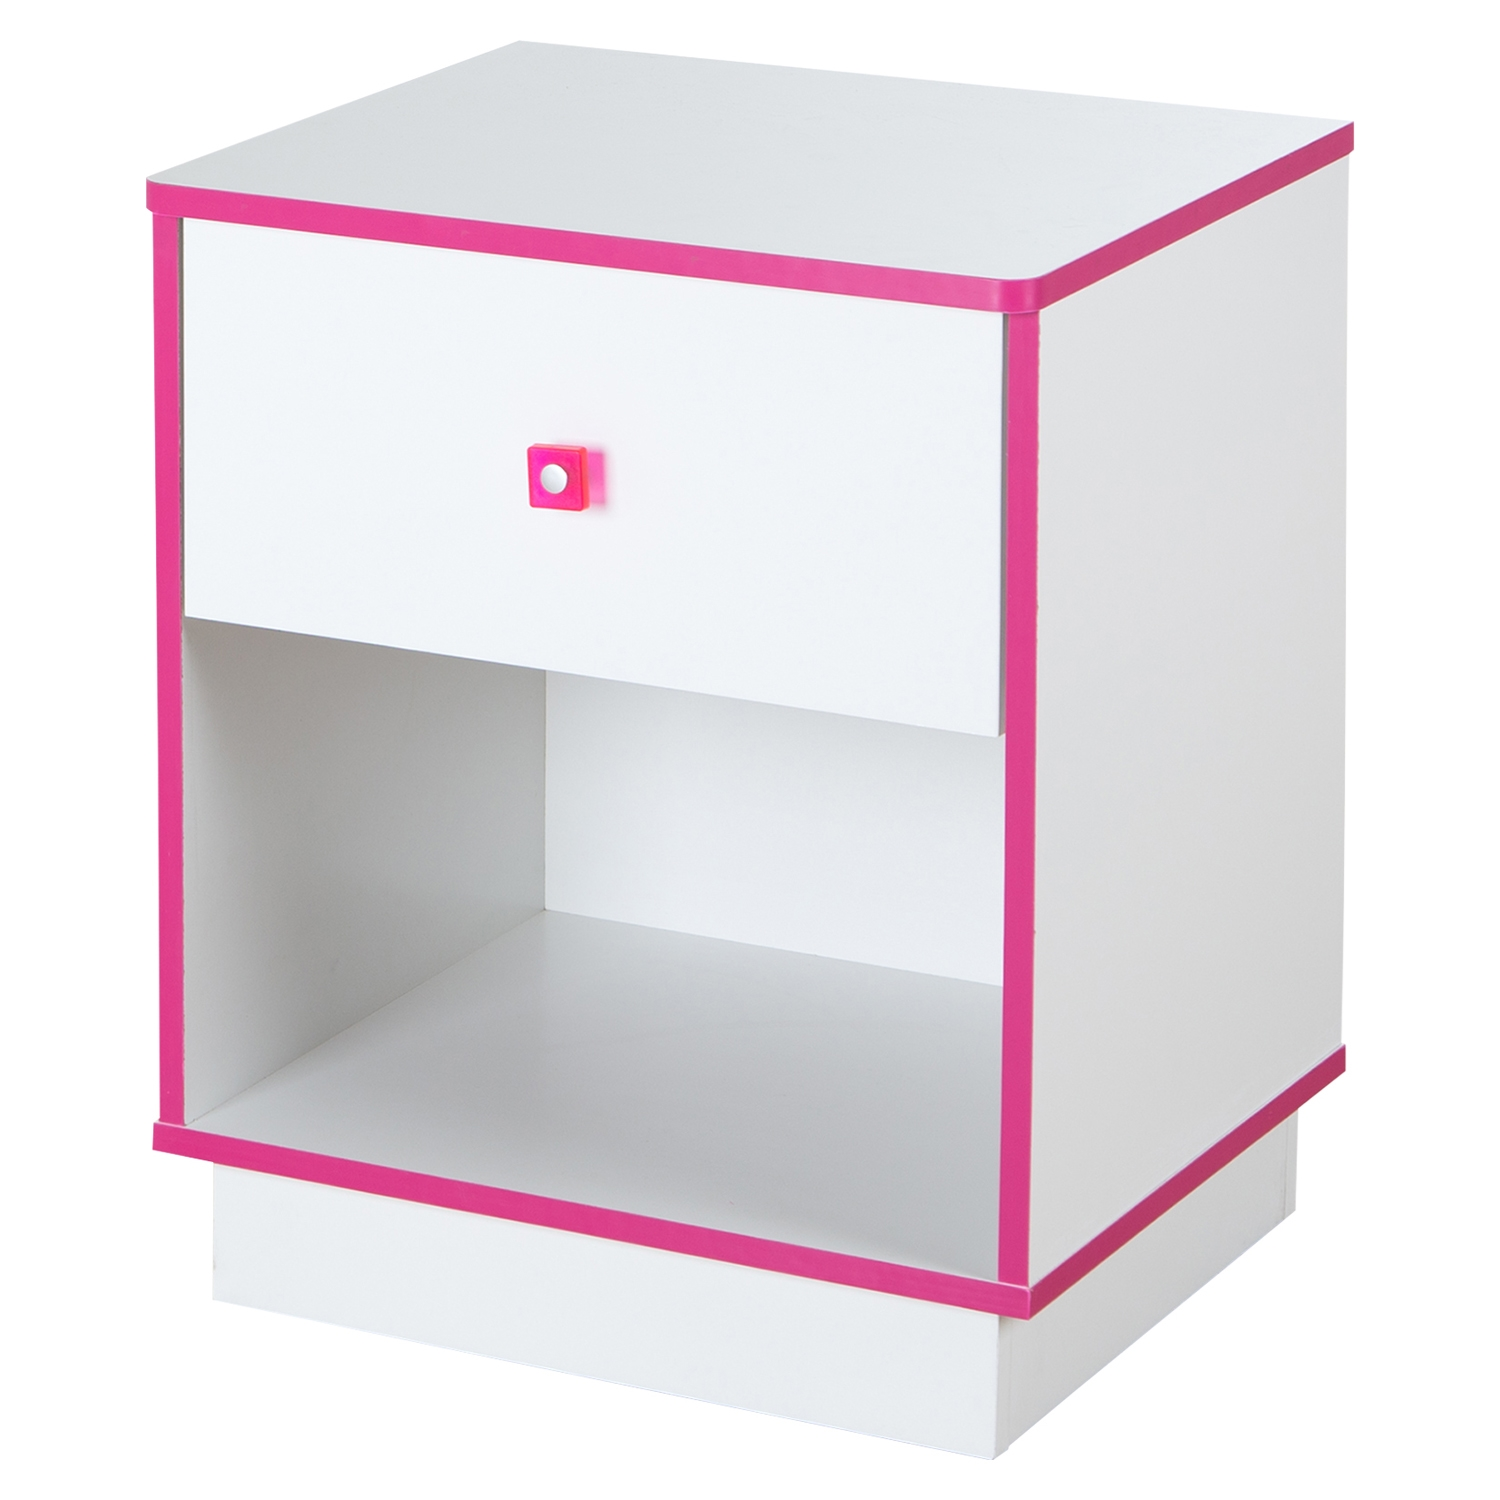 Logik 1 Drawer Nightstand - Pure White and Pink